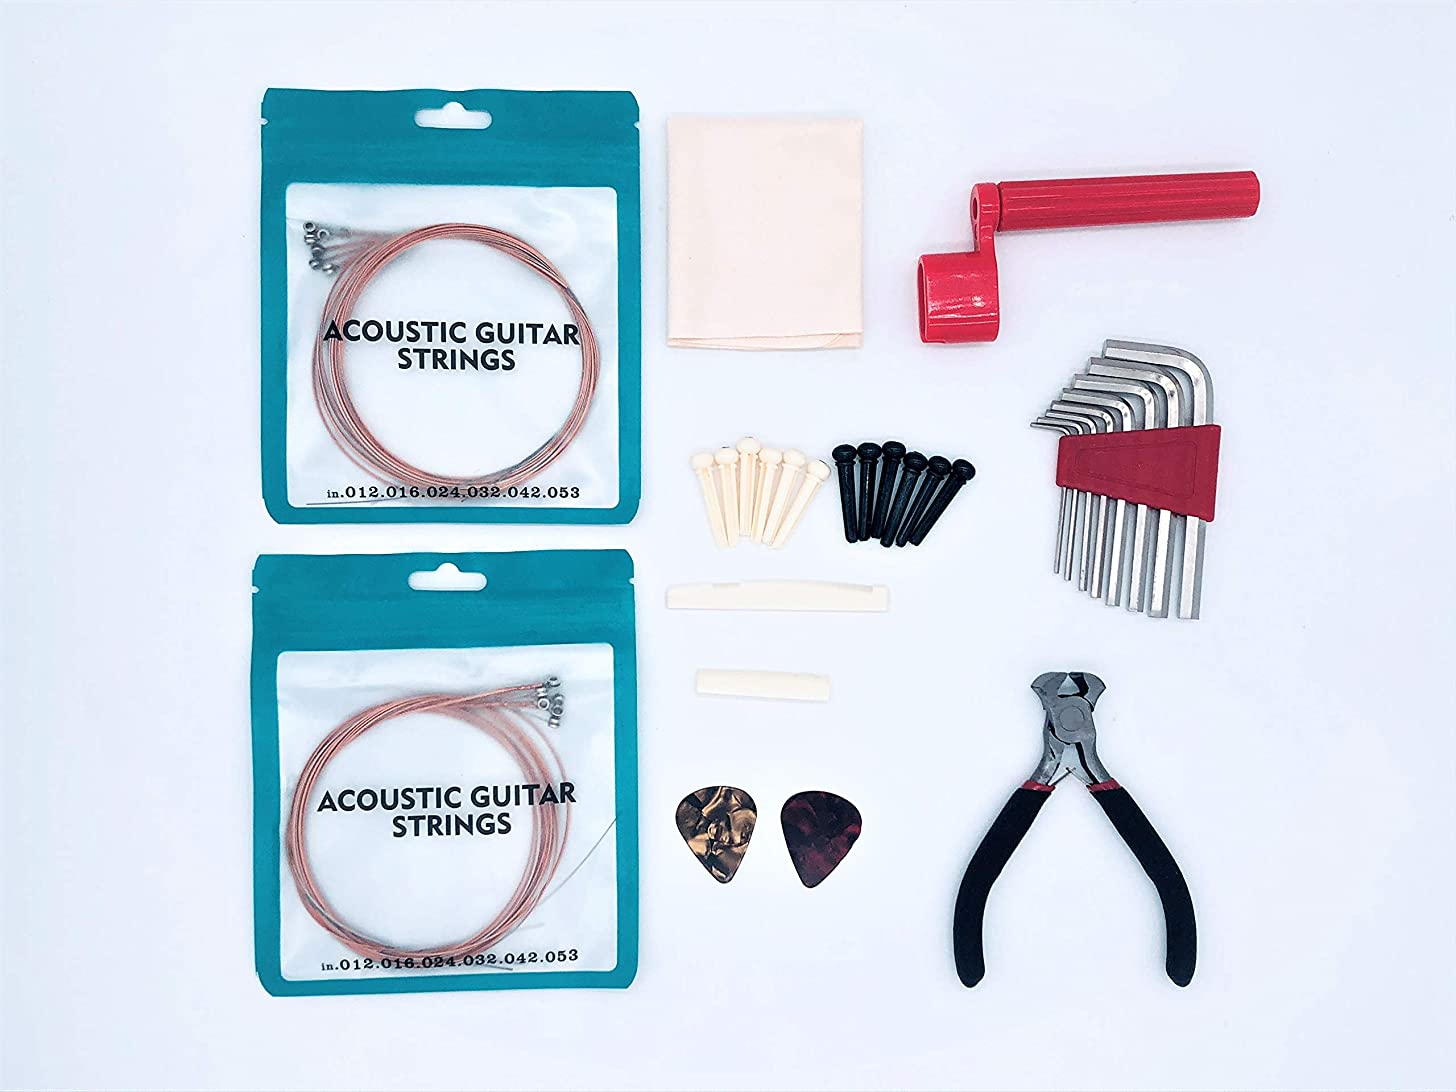 HarvestWings 40pcs Beginner Acoustic Guitar Kit w/Strings, Picks, String Winder,Cutter, Allen Keys, Cleaning Cloth and Replacements